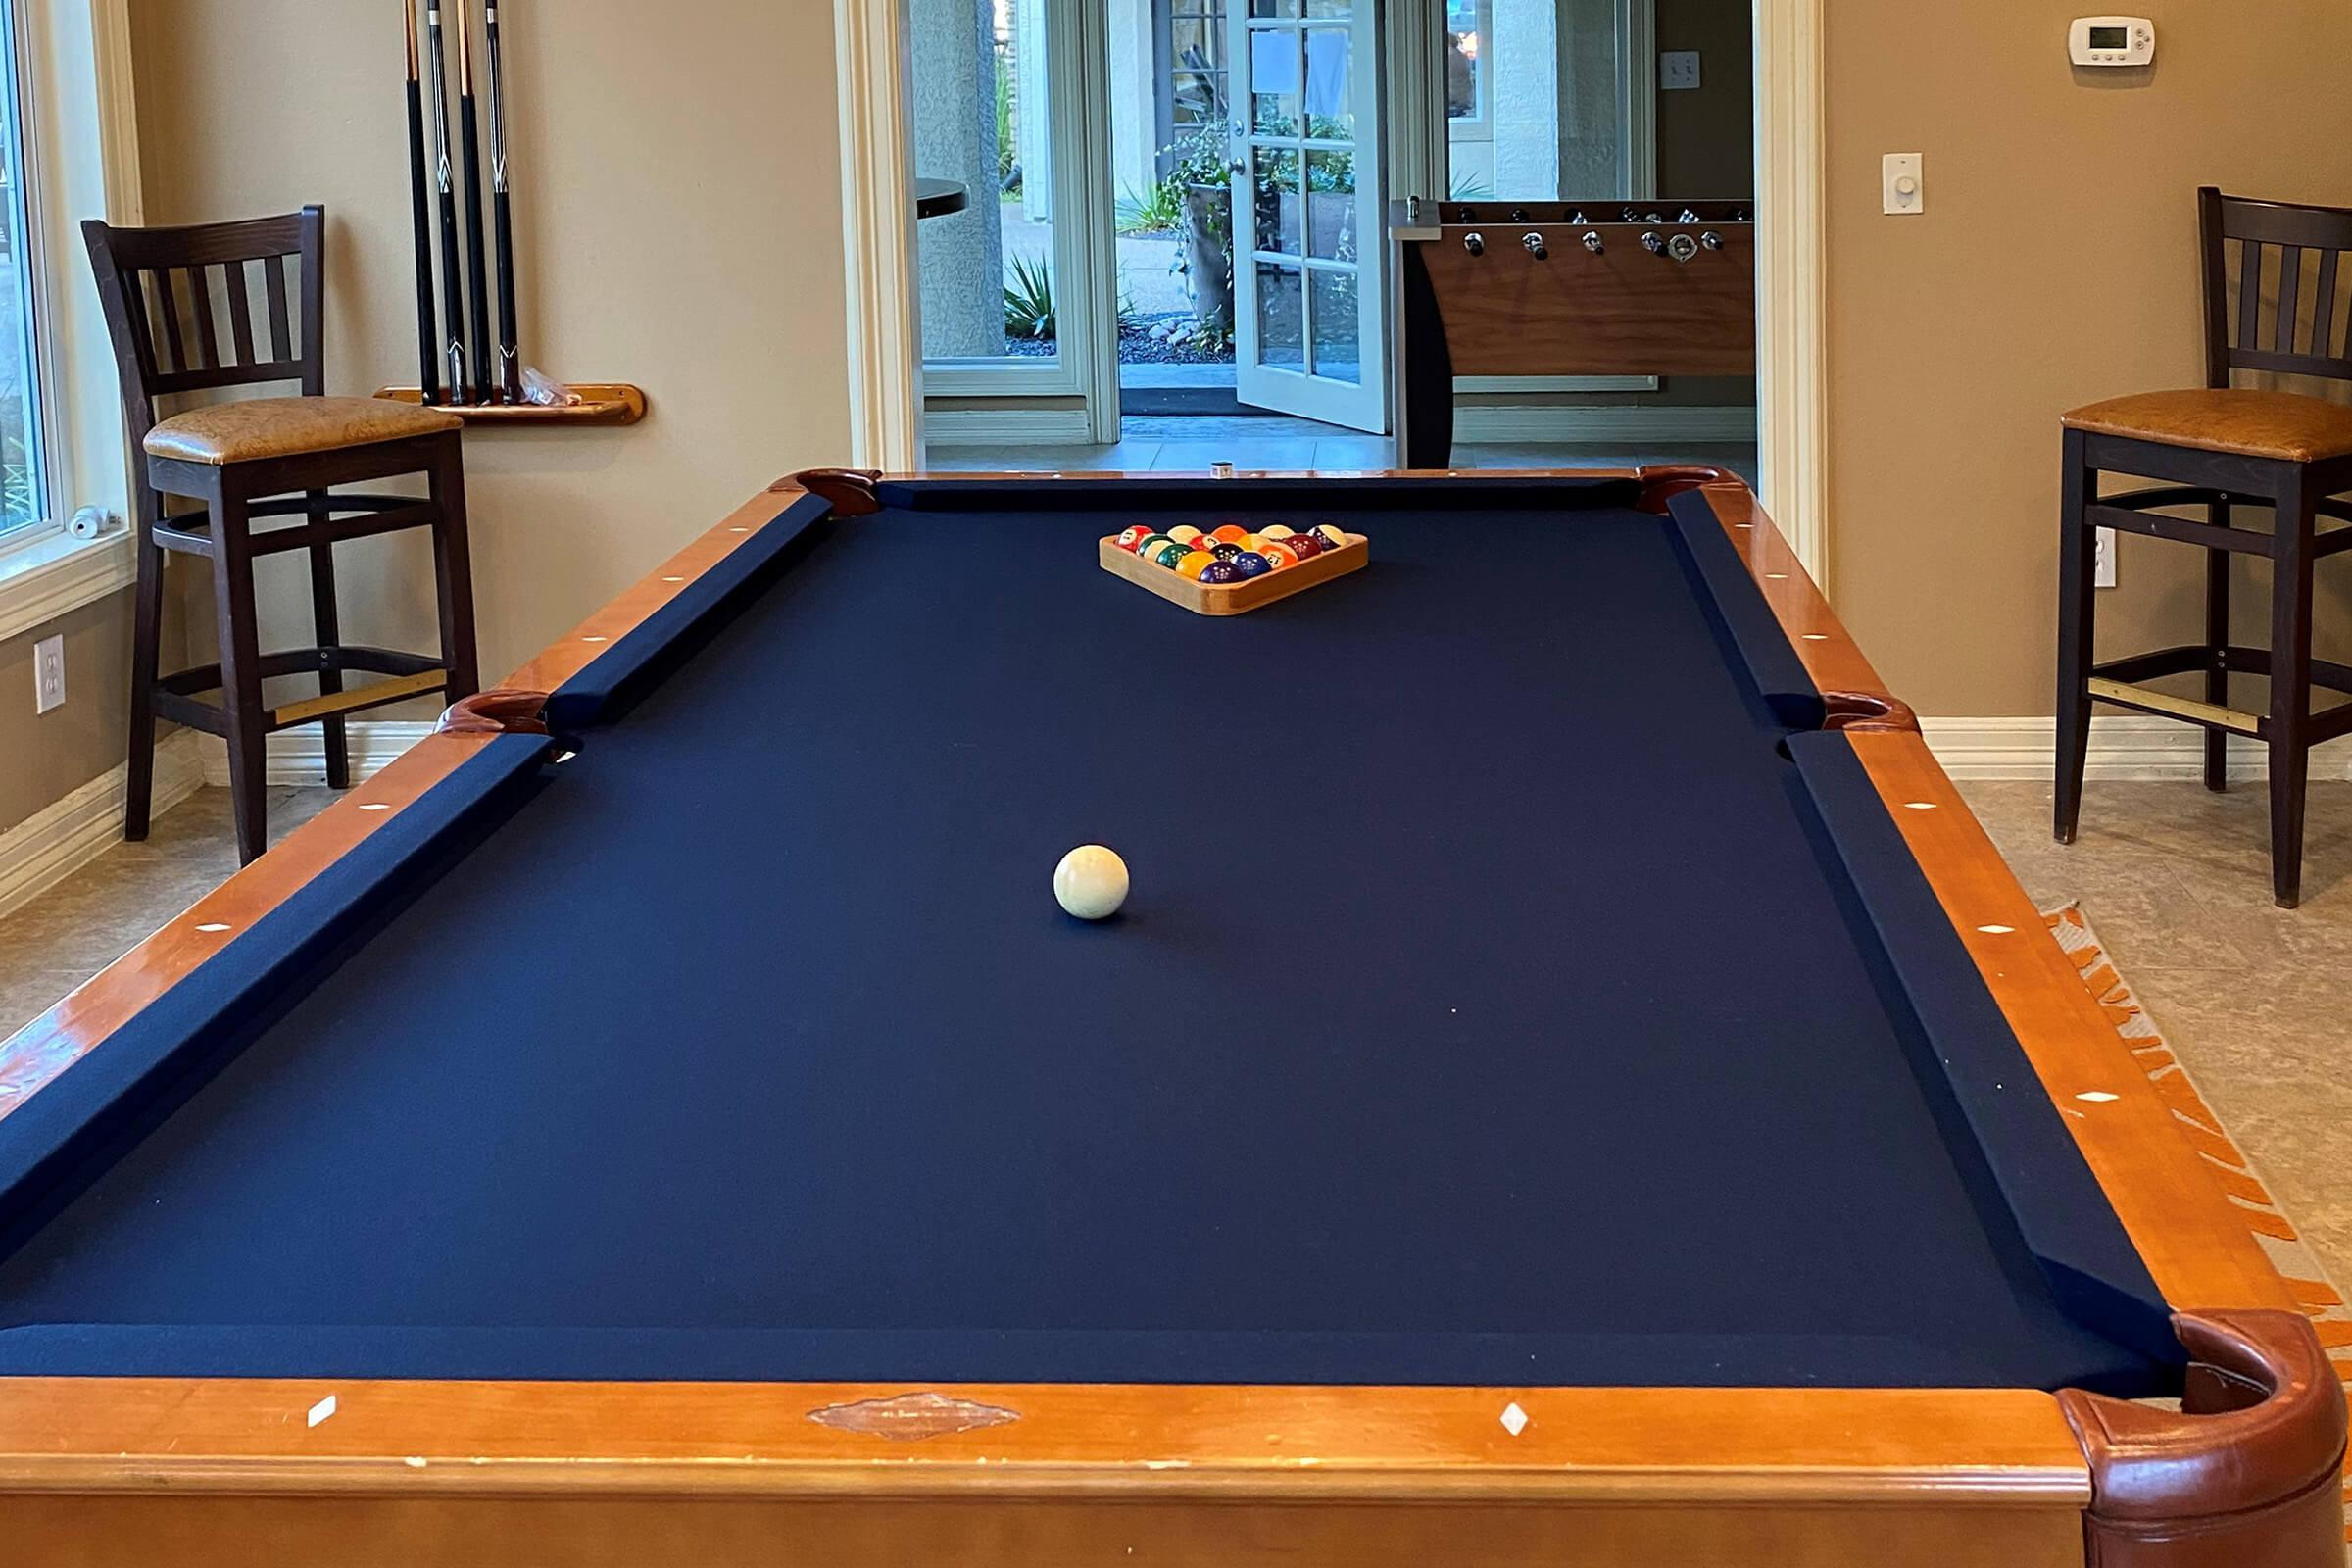 a table with a ball in a room